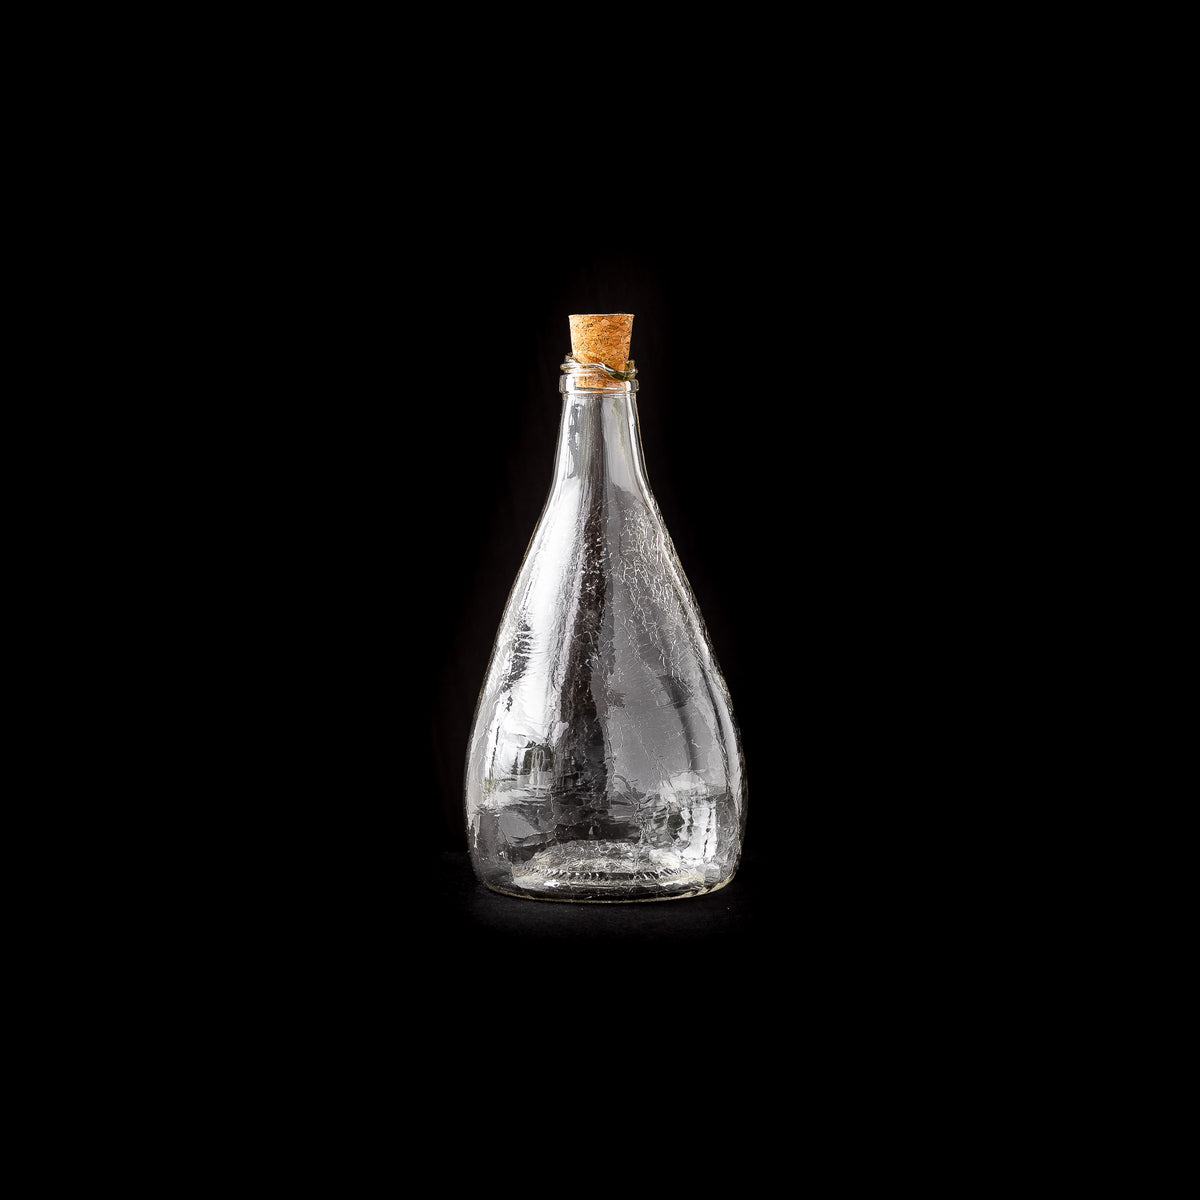 Blown Glass Maple Syrup Bottle - Crackled Texture - Sold by Chic & Basta